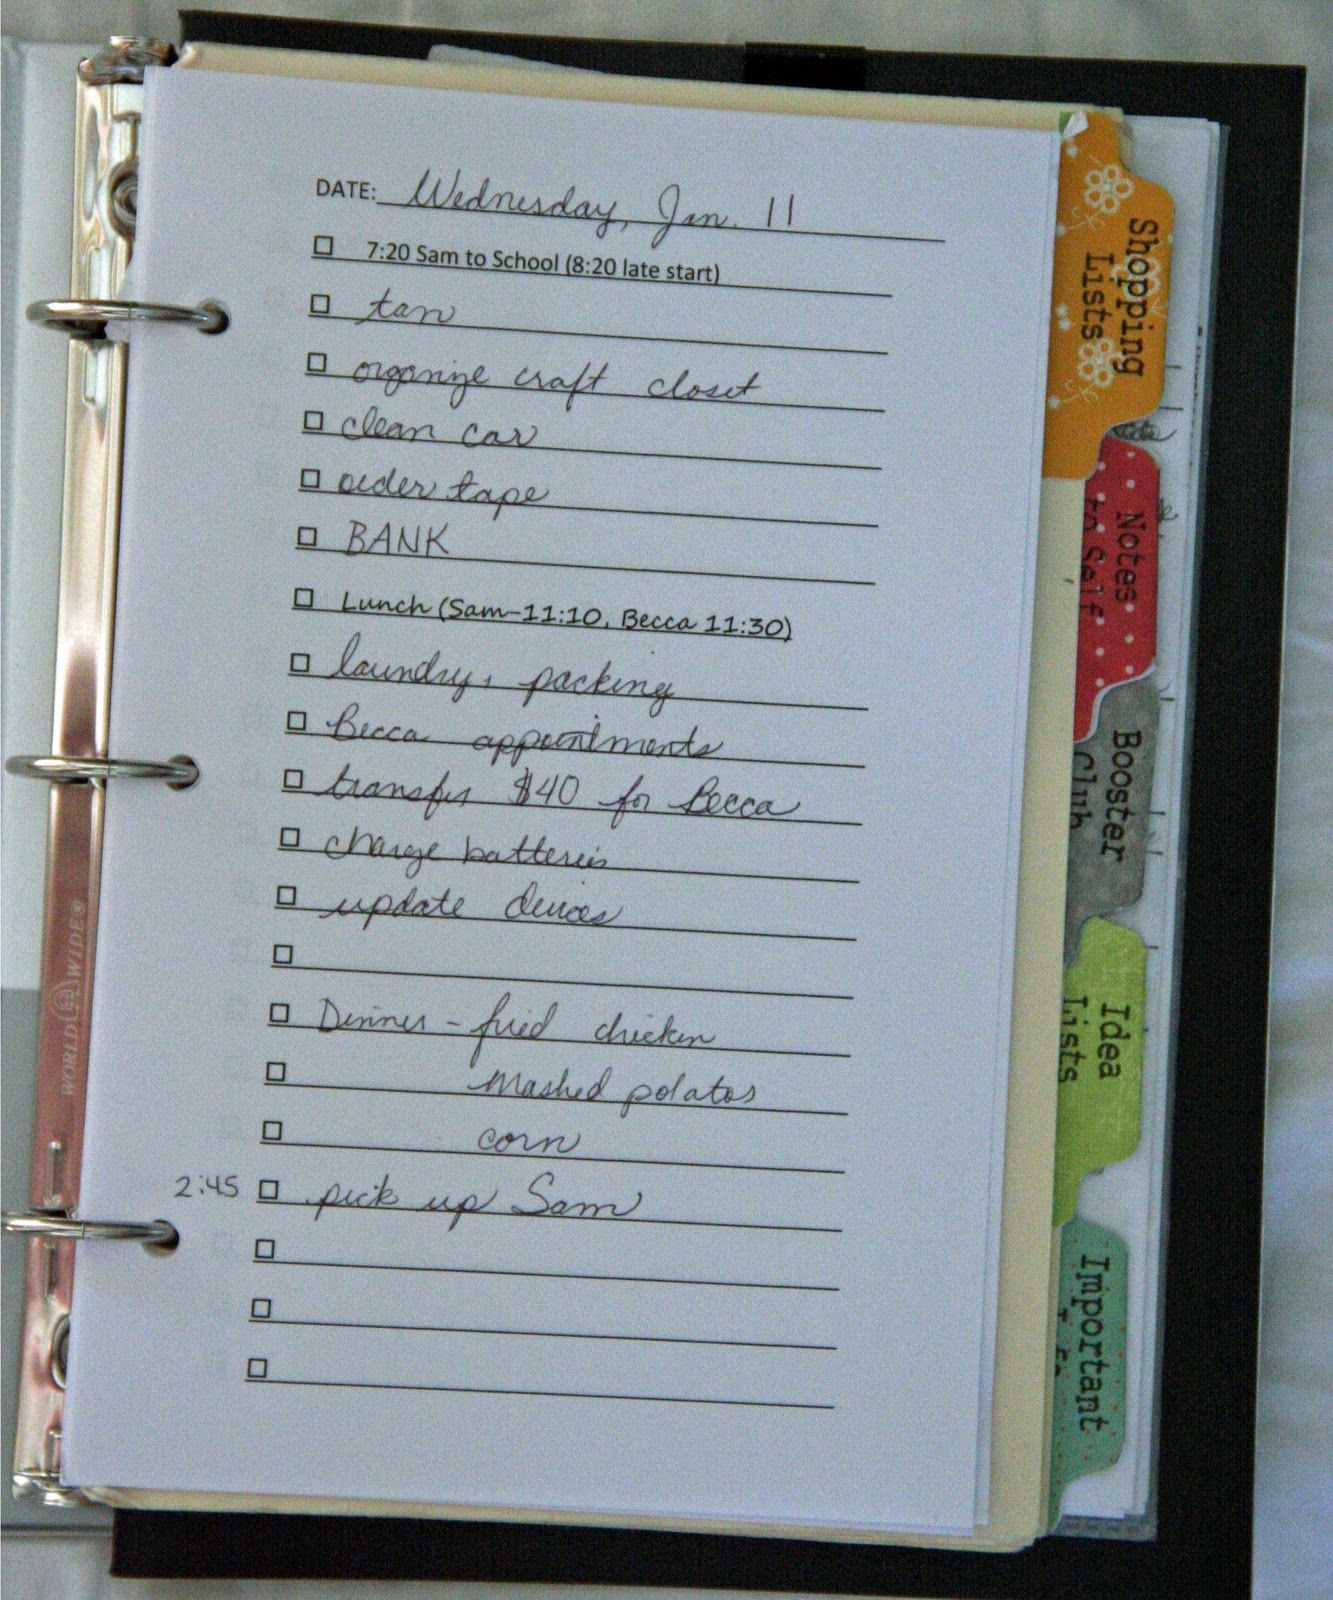 DIY Daily Planner/Organizer | Life Moves Pretty Fast ... Interesting post of how she puts together her planner (Read 06/25/2013 - ThT (•~•))